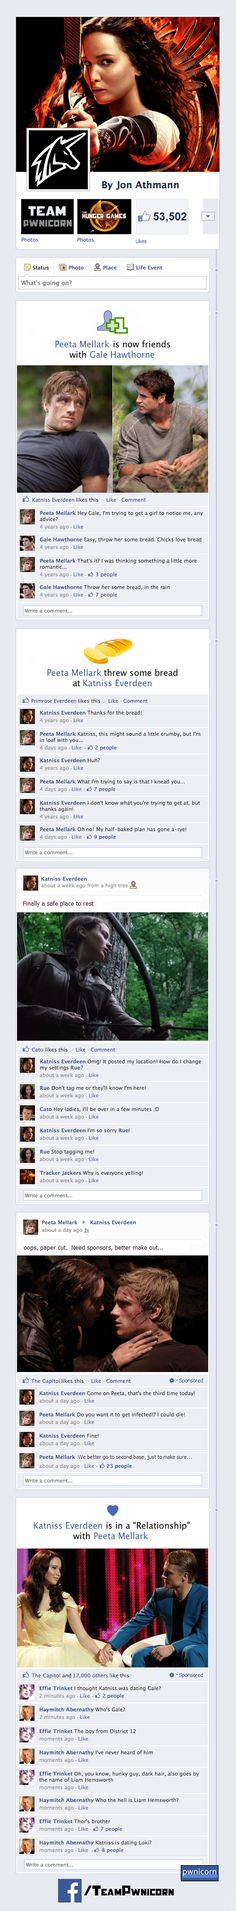 The Hunger Games Told Through Facebook from Team Pwnicorn